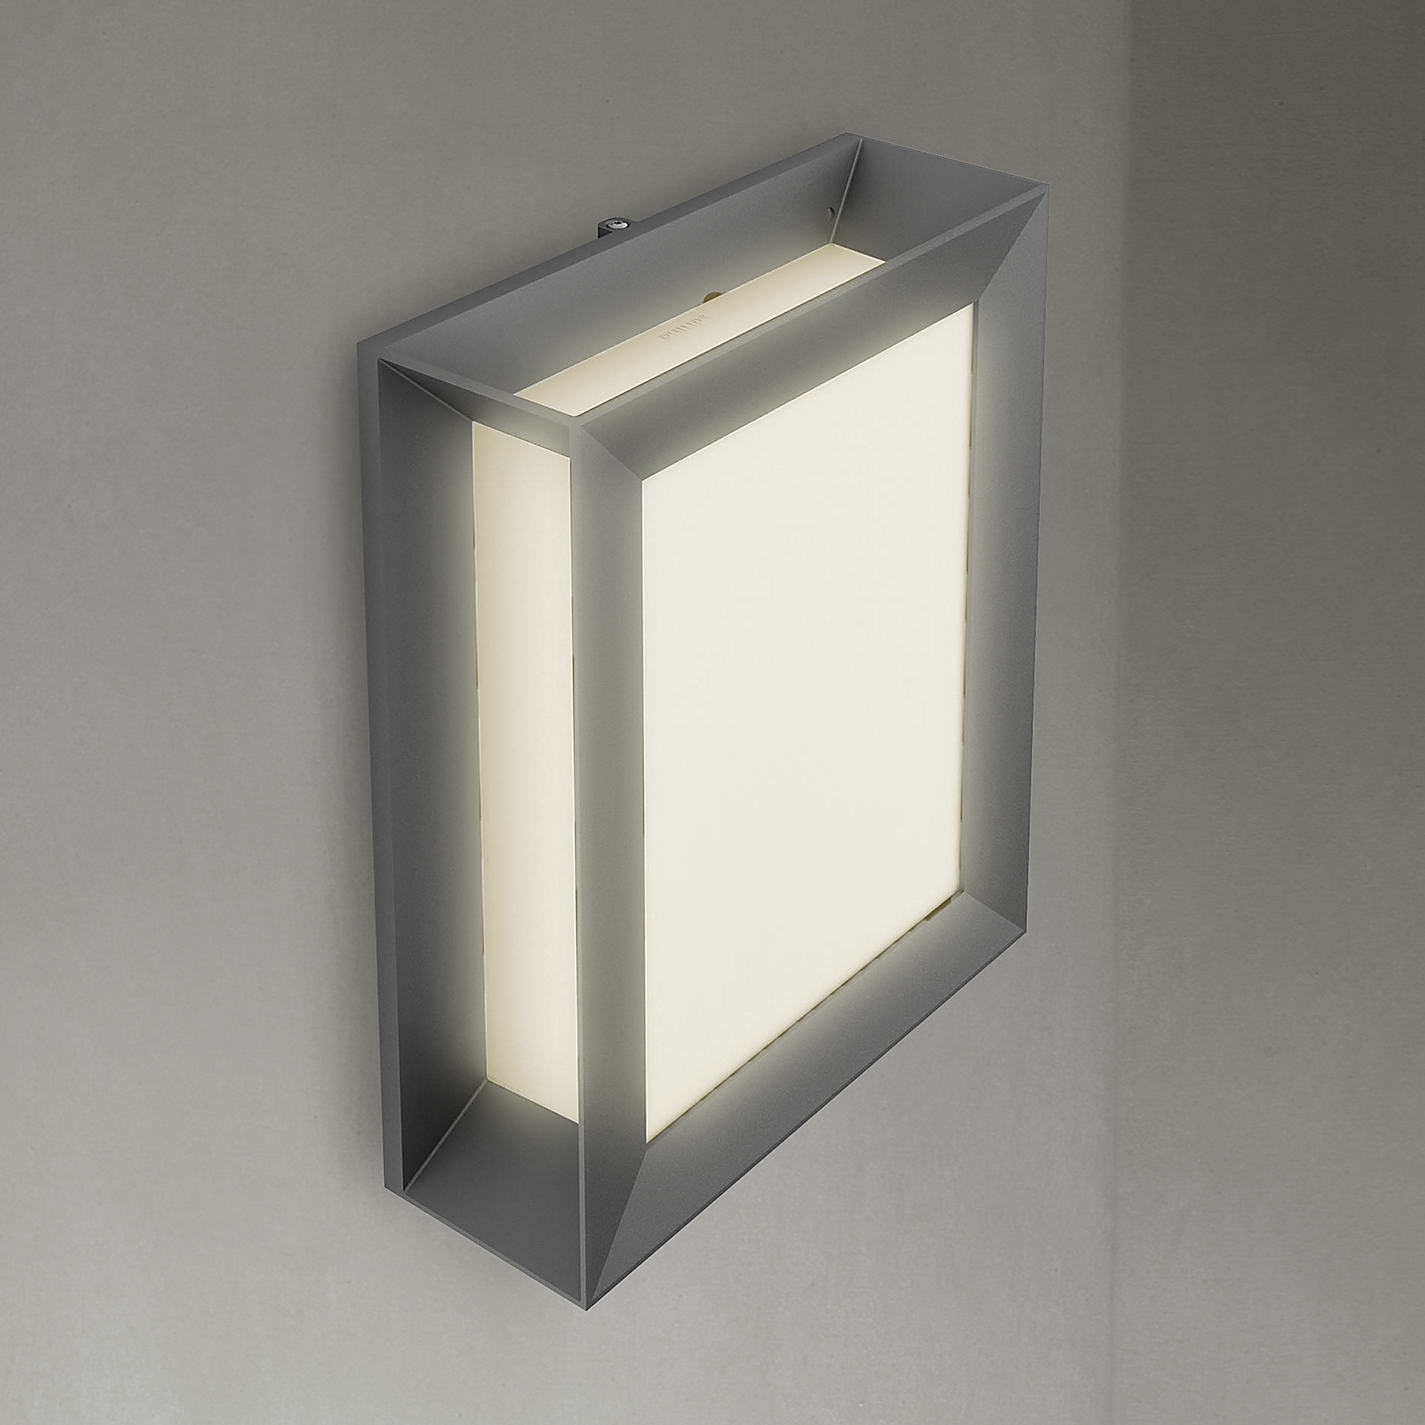 Buy Philips Karp Led Outdoor Wall Light Anthracite John Lewis Inside Outdoor Wall Sconce Led Lights (#3 of 15)